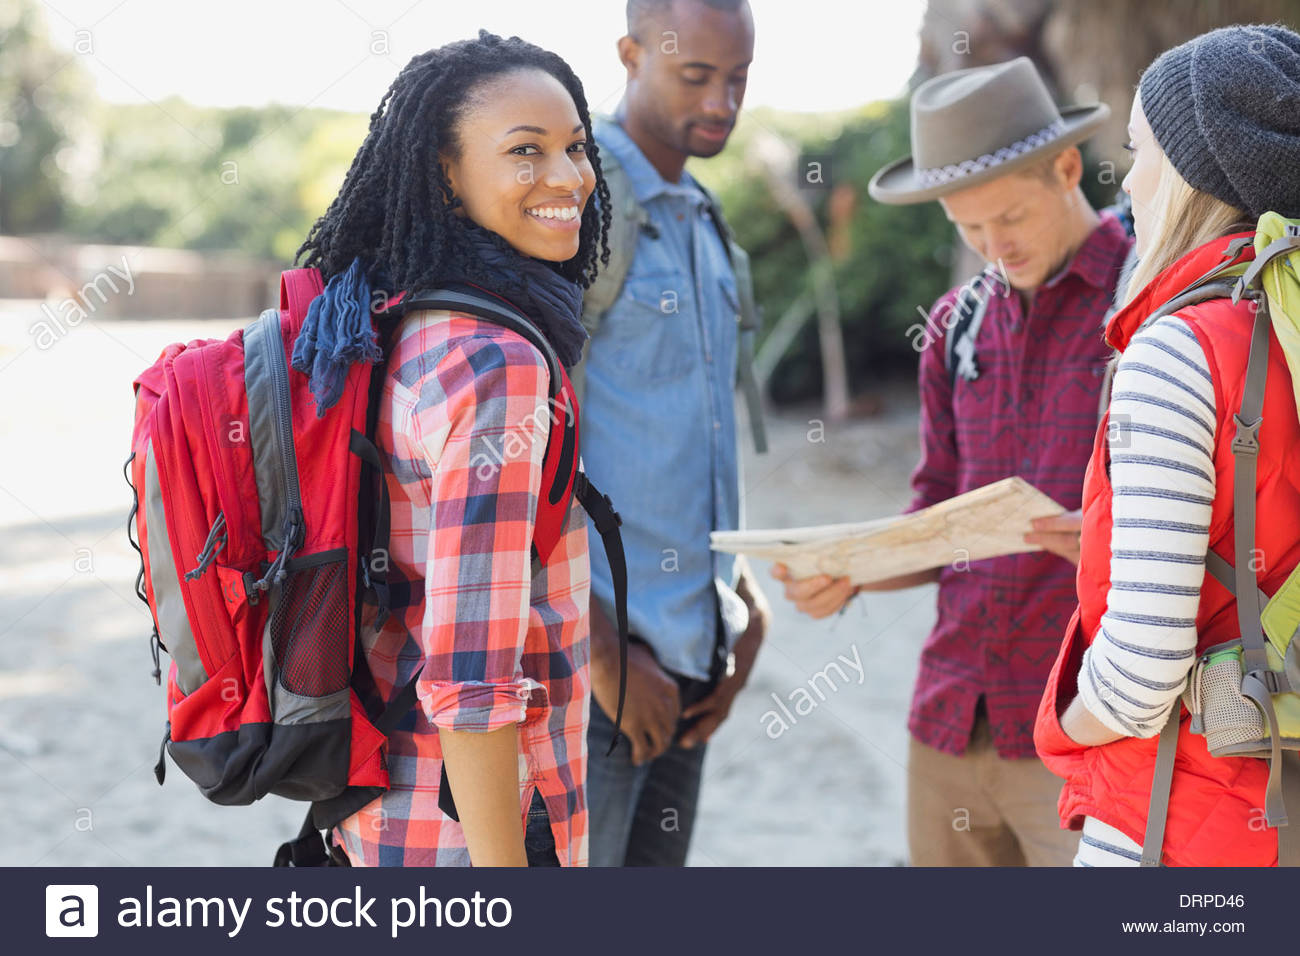 Portrait of female backpacker with friends outdoors - Stock Image